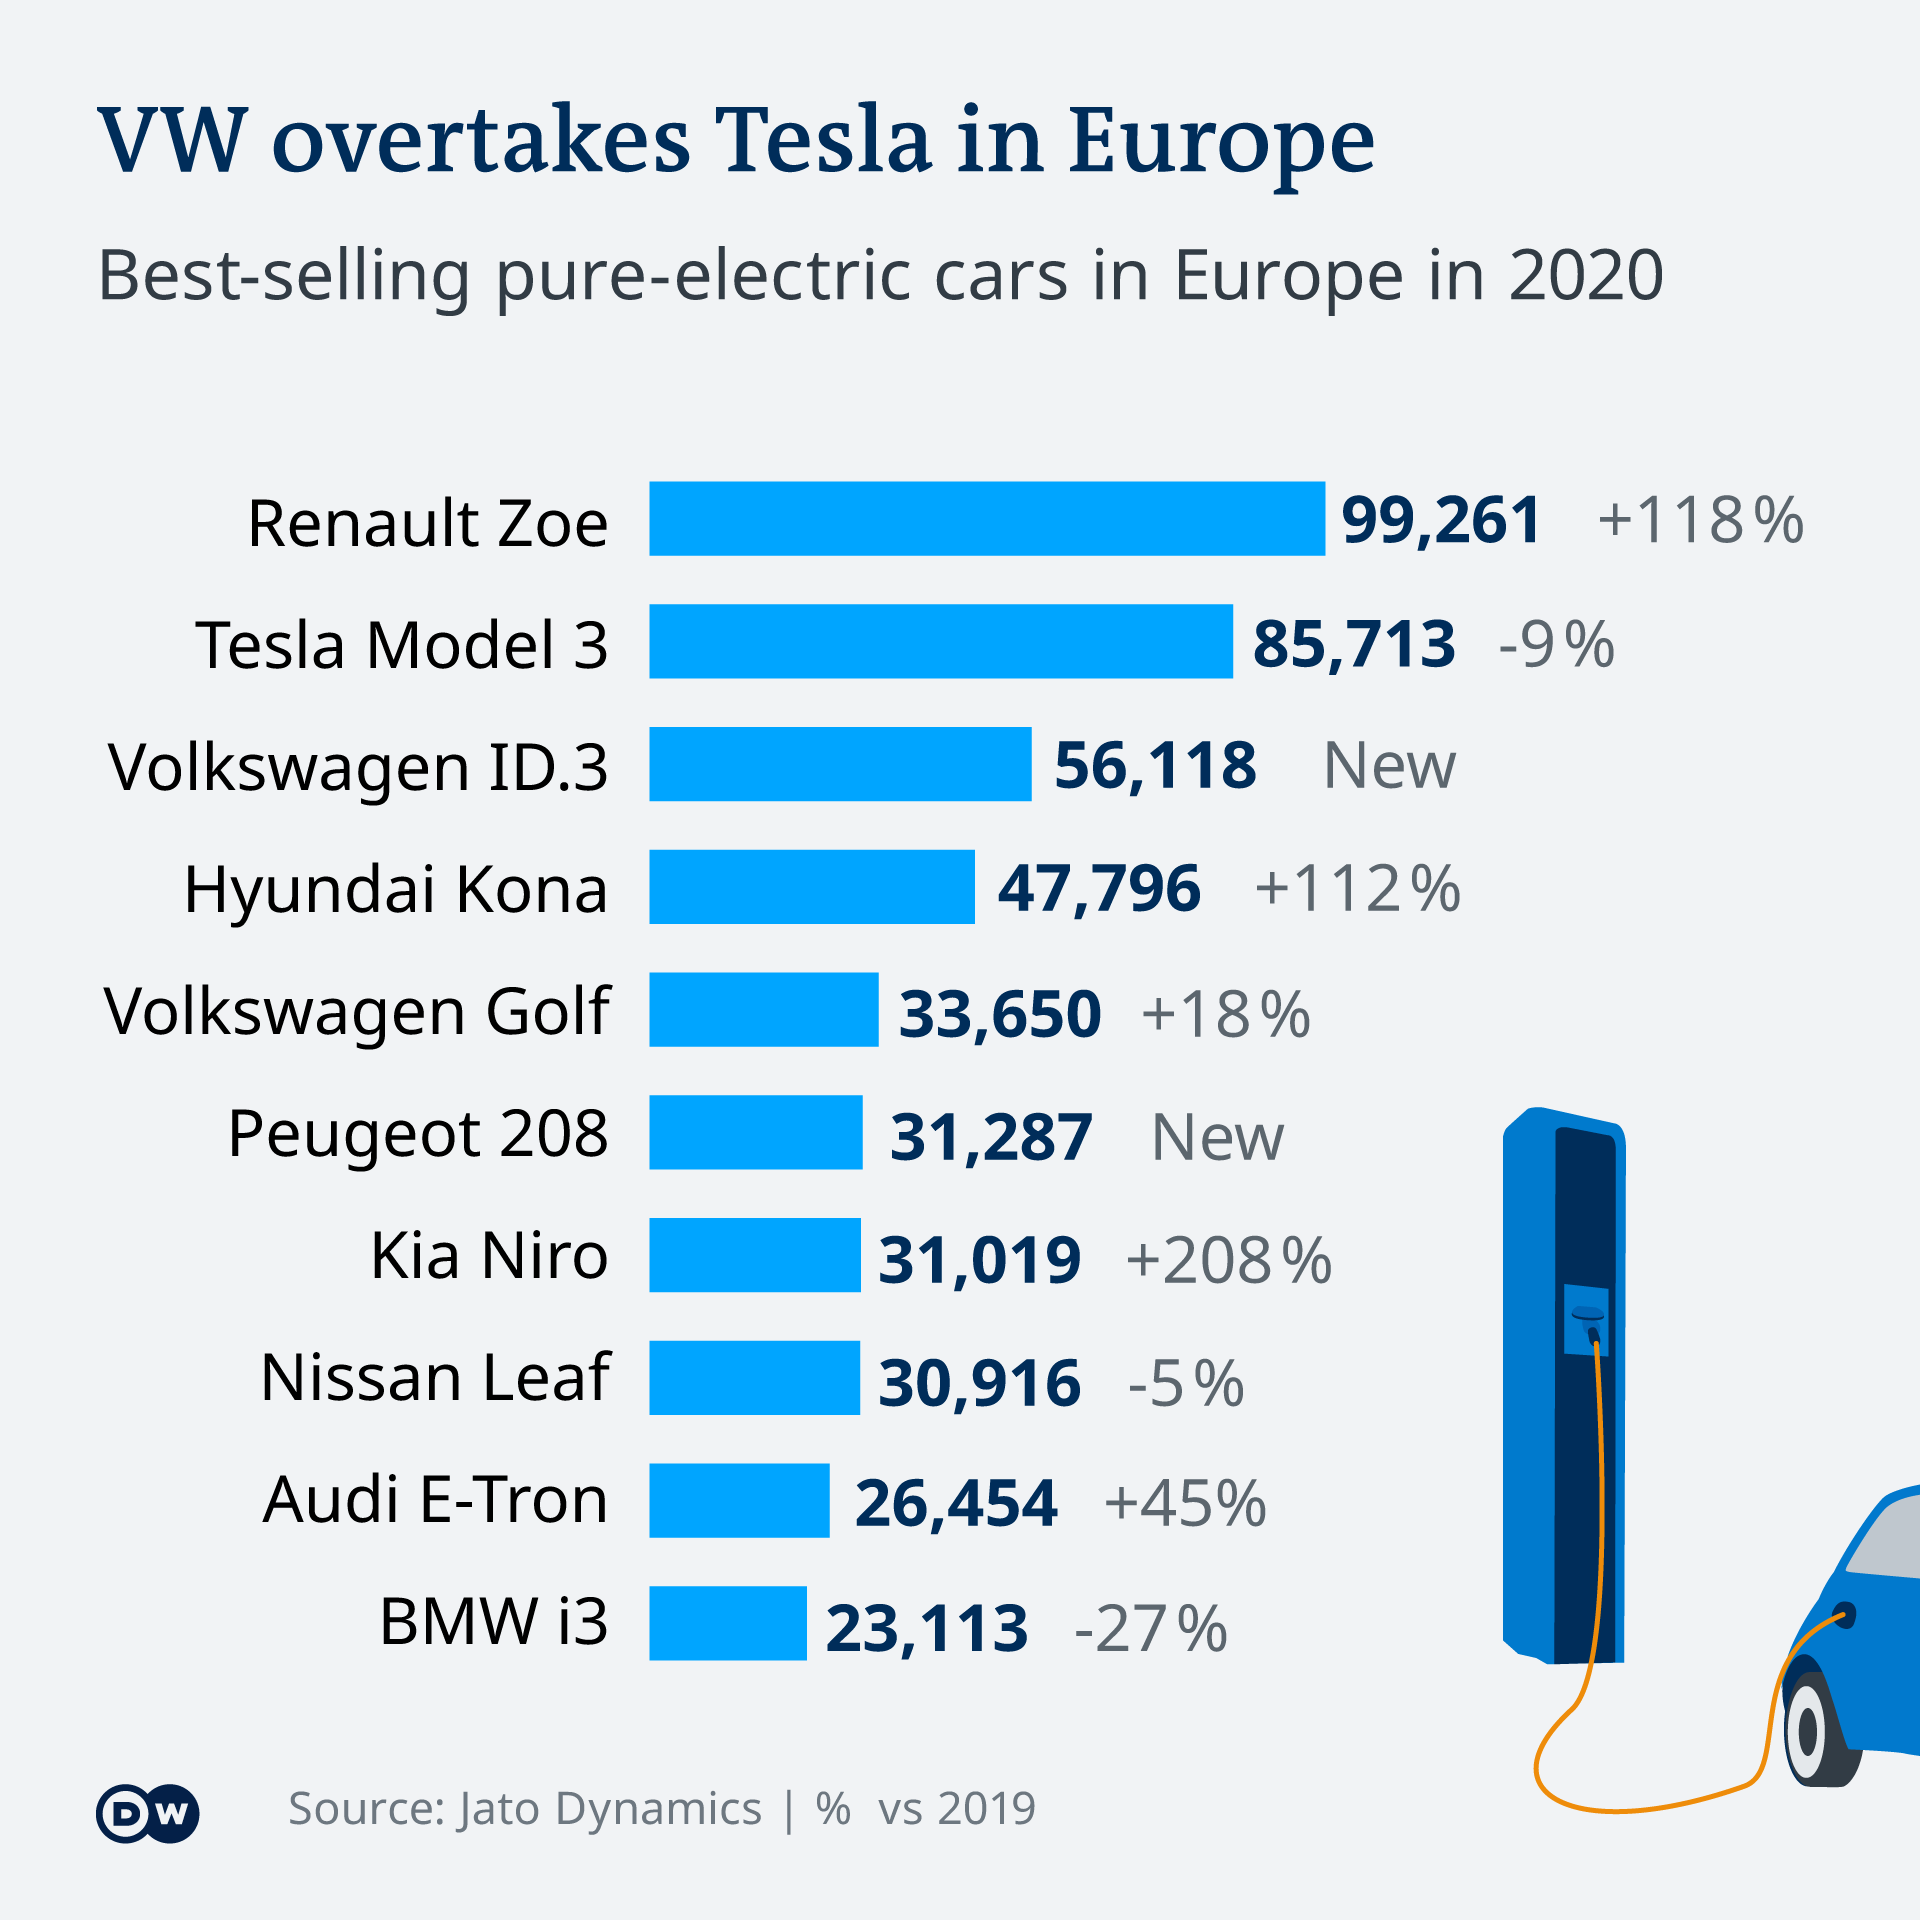 An infographic showing bestselling electric car models in Europe